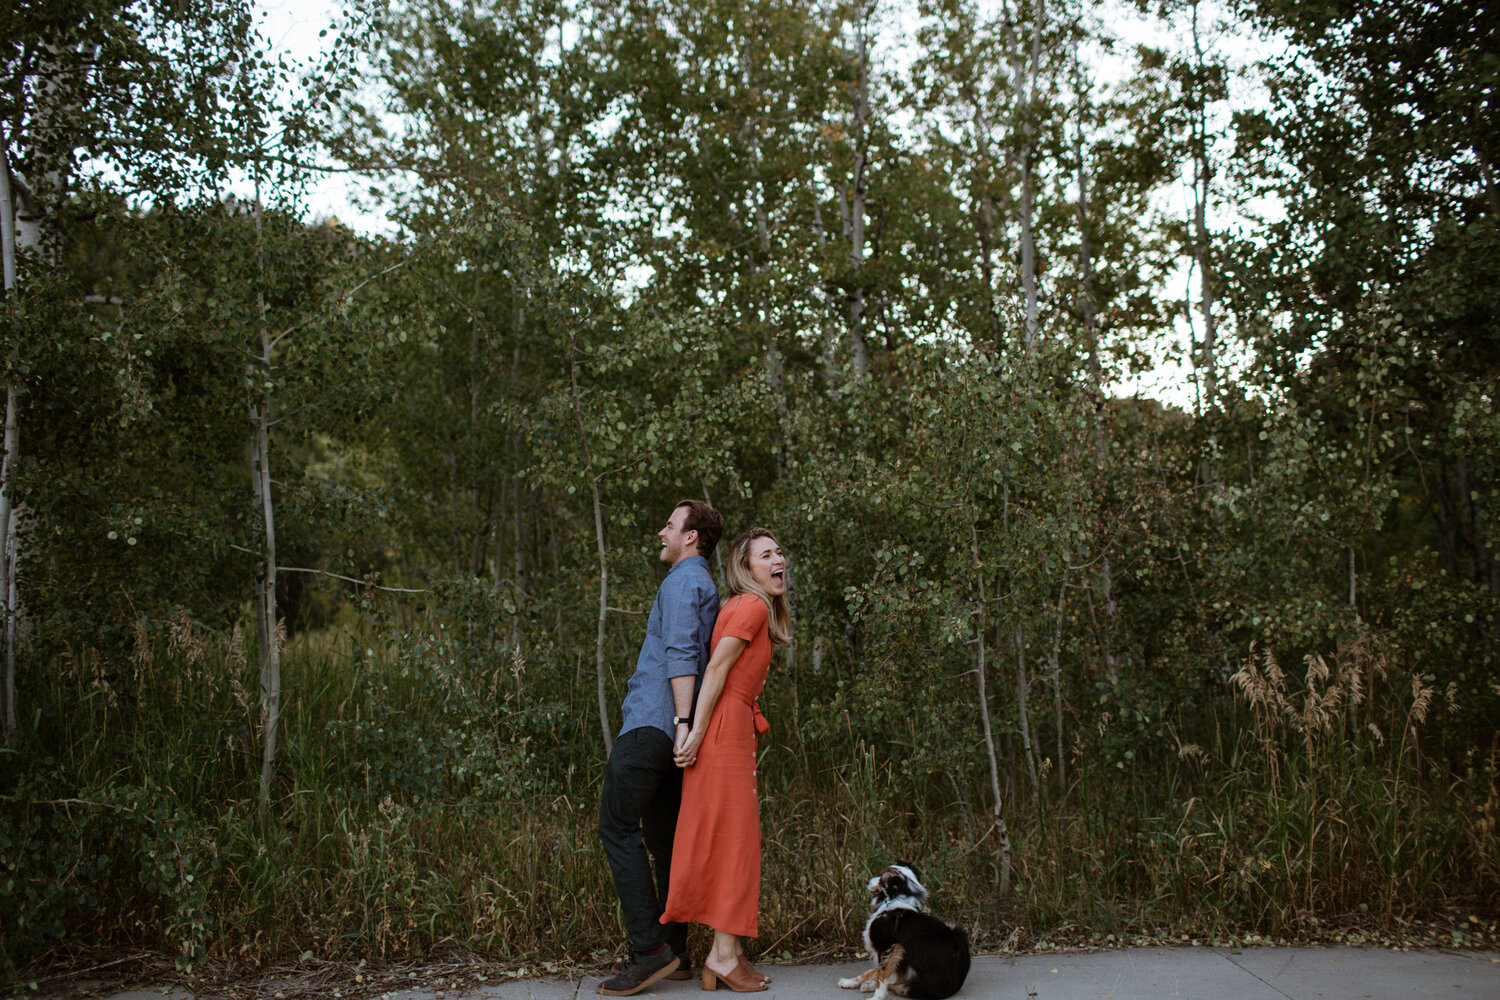 sun-valley-engagement-photos-christinemarie-30.jpg